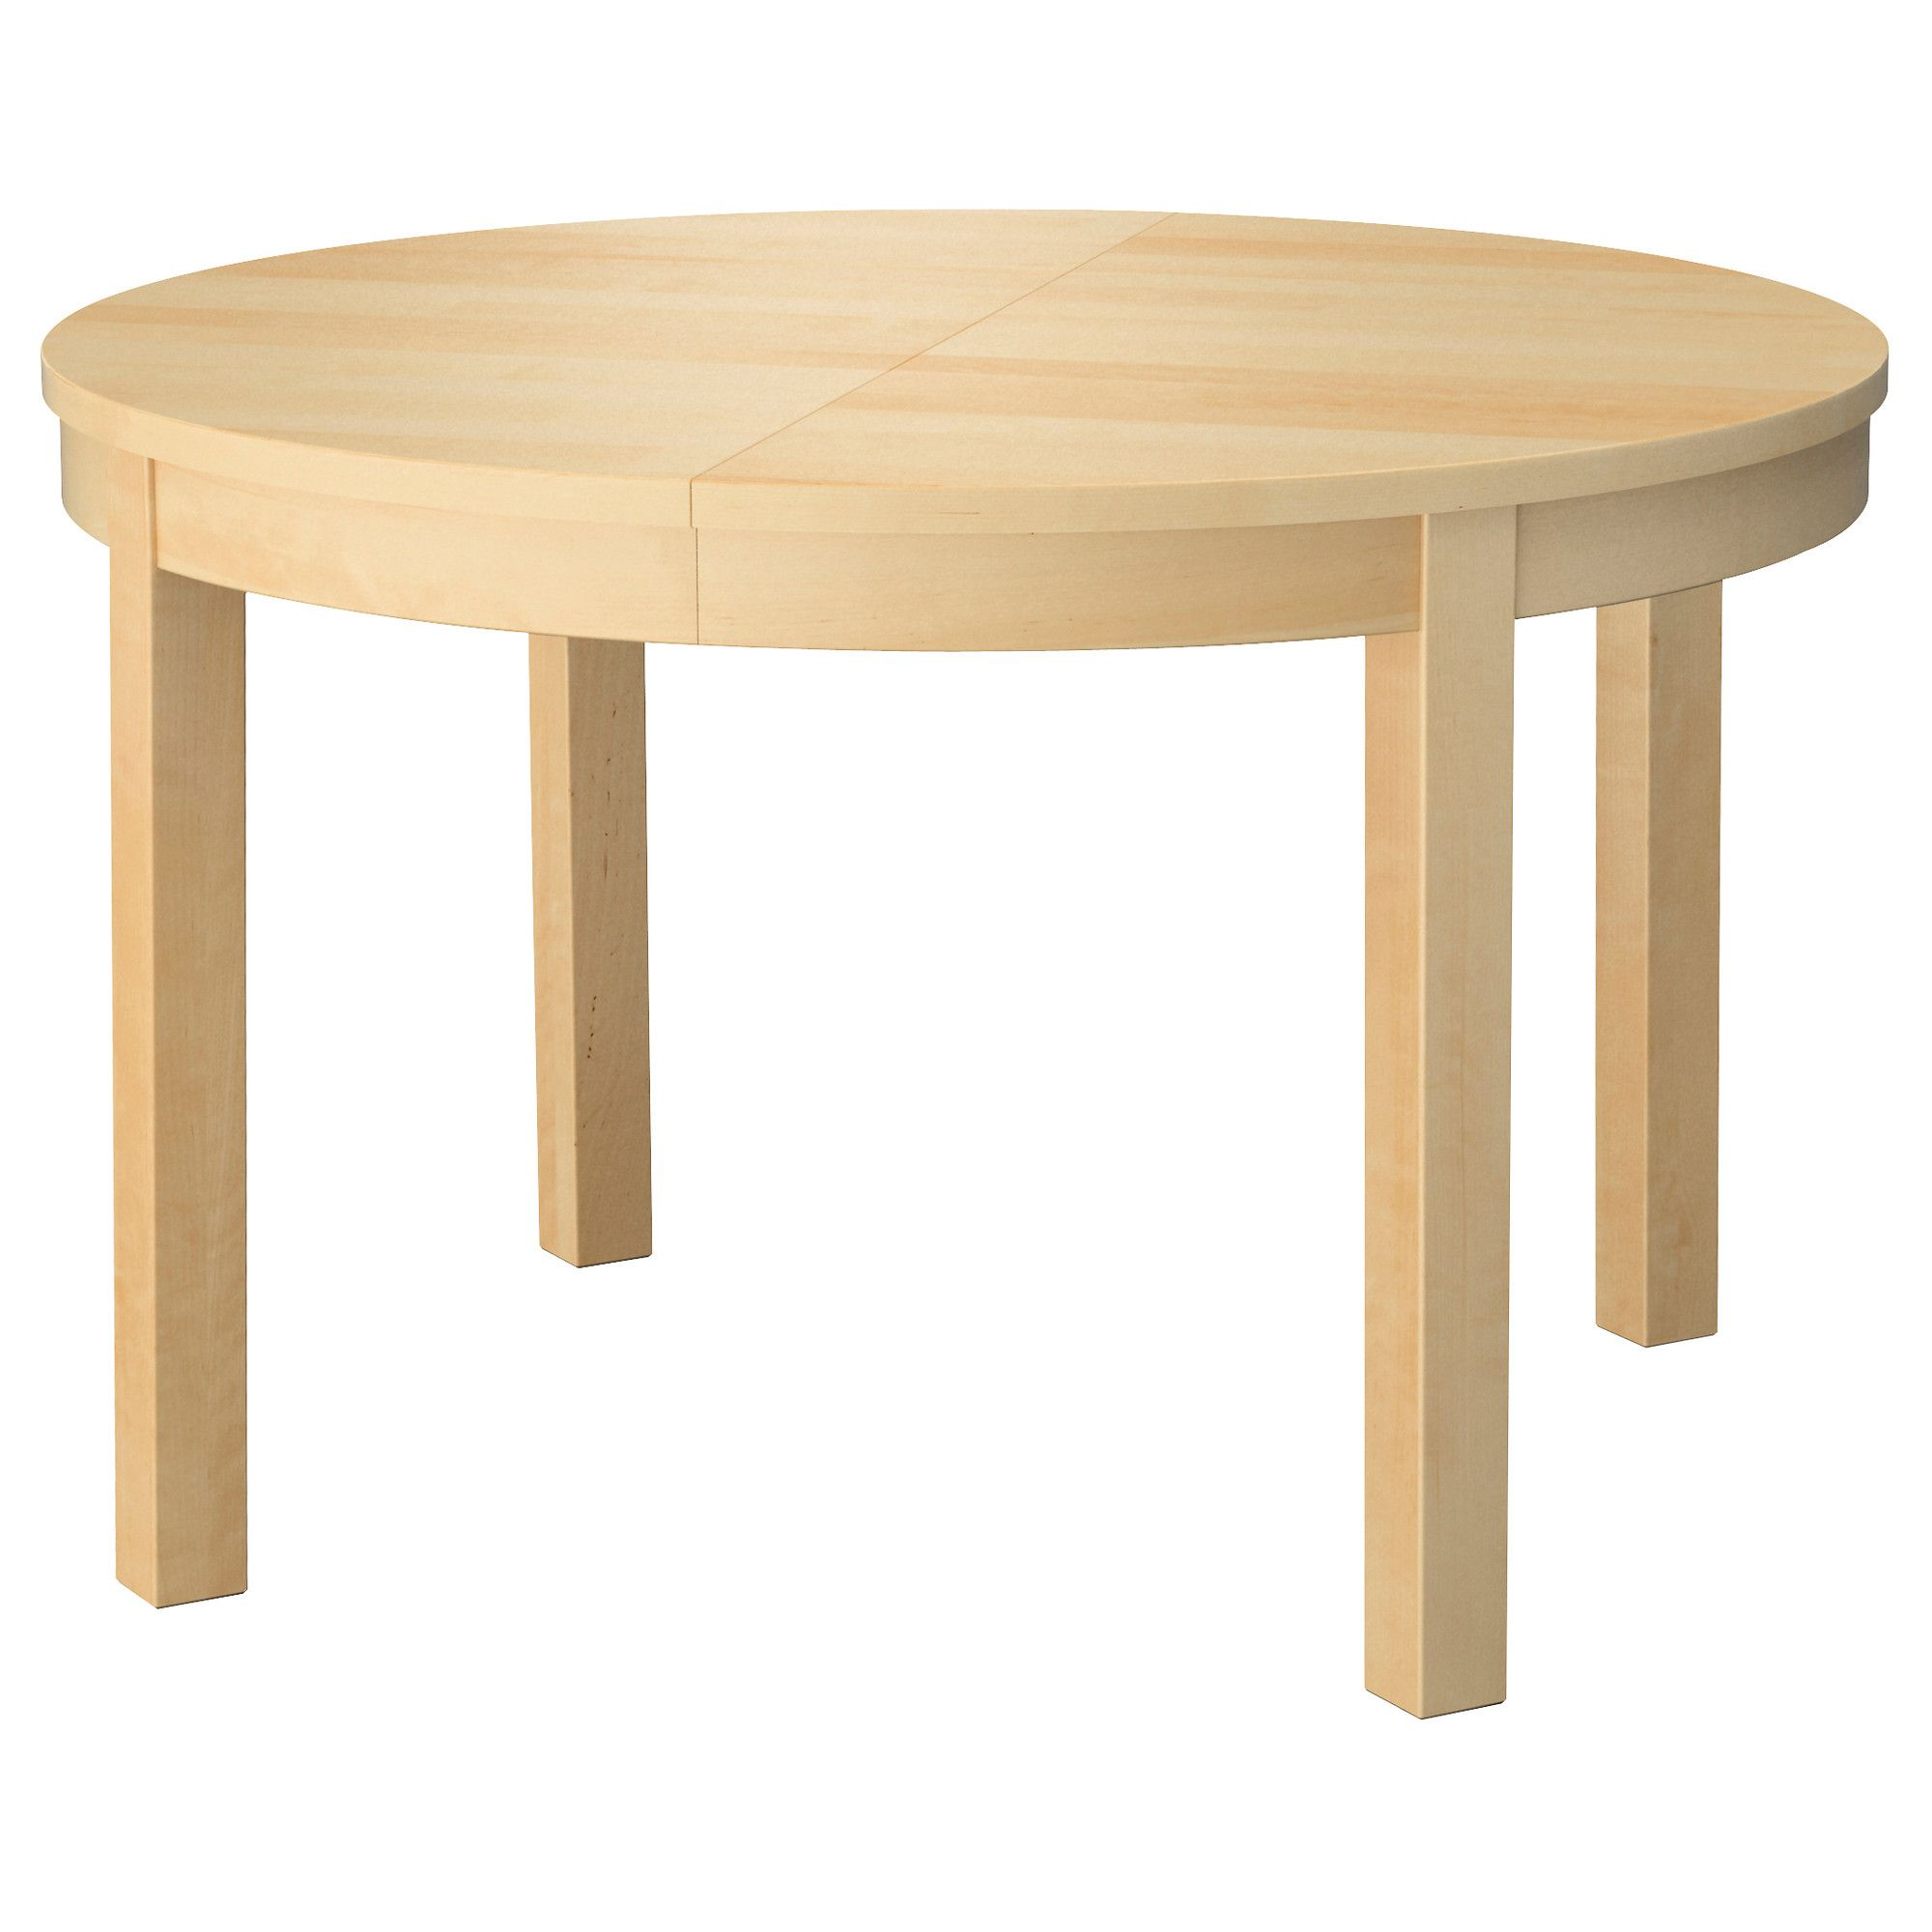 bjursta extendable table birch veneer ikea seats 4 6 would be perfect for our rounded. Black Bedroom Furniture Sets. Home Design Ideas